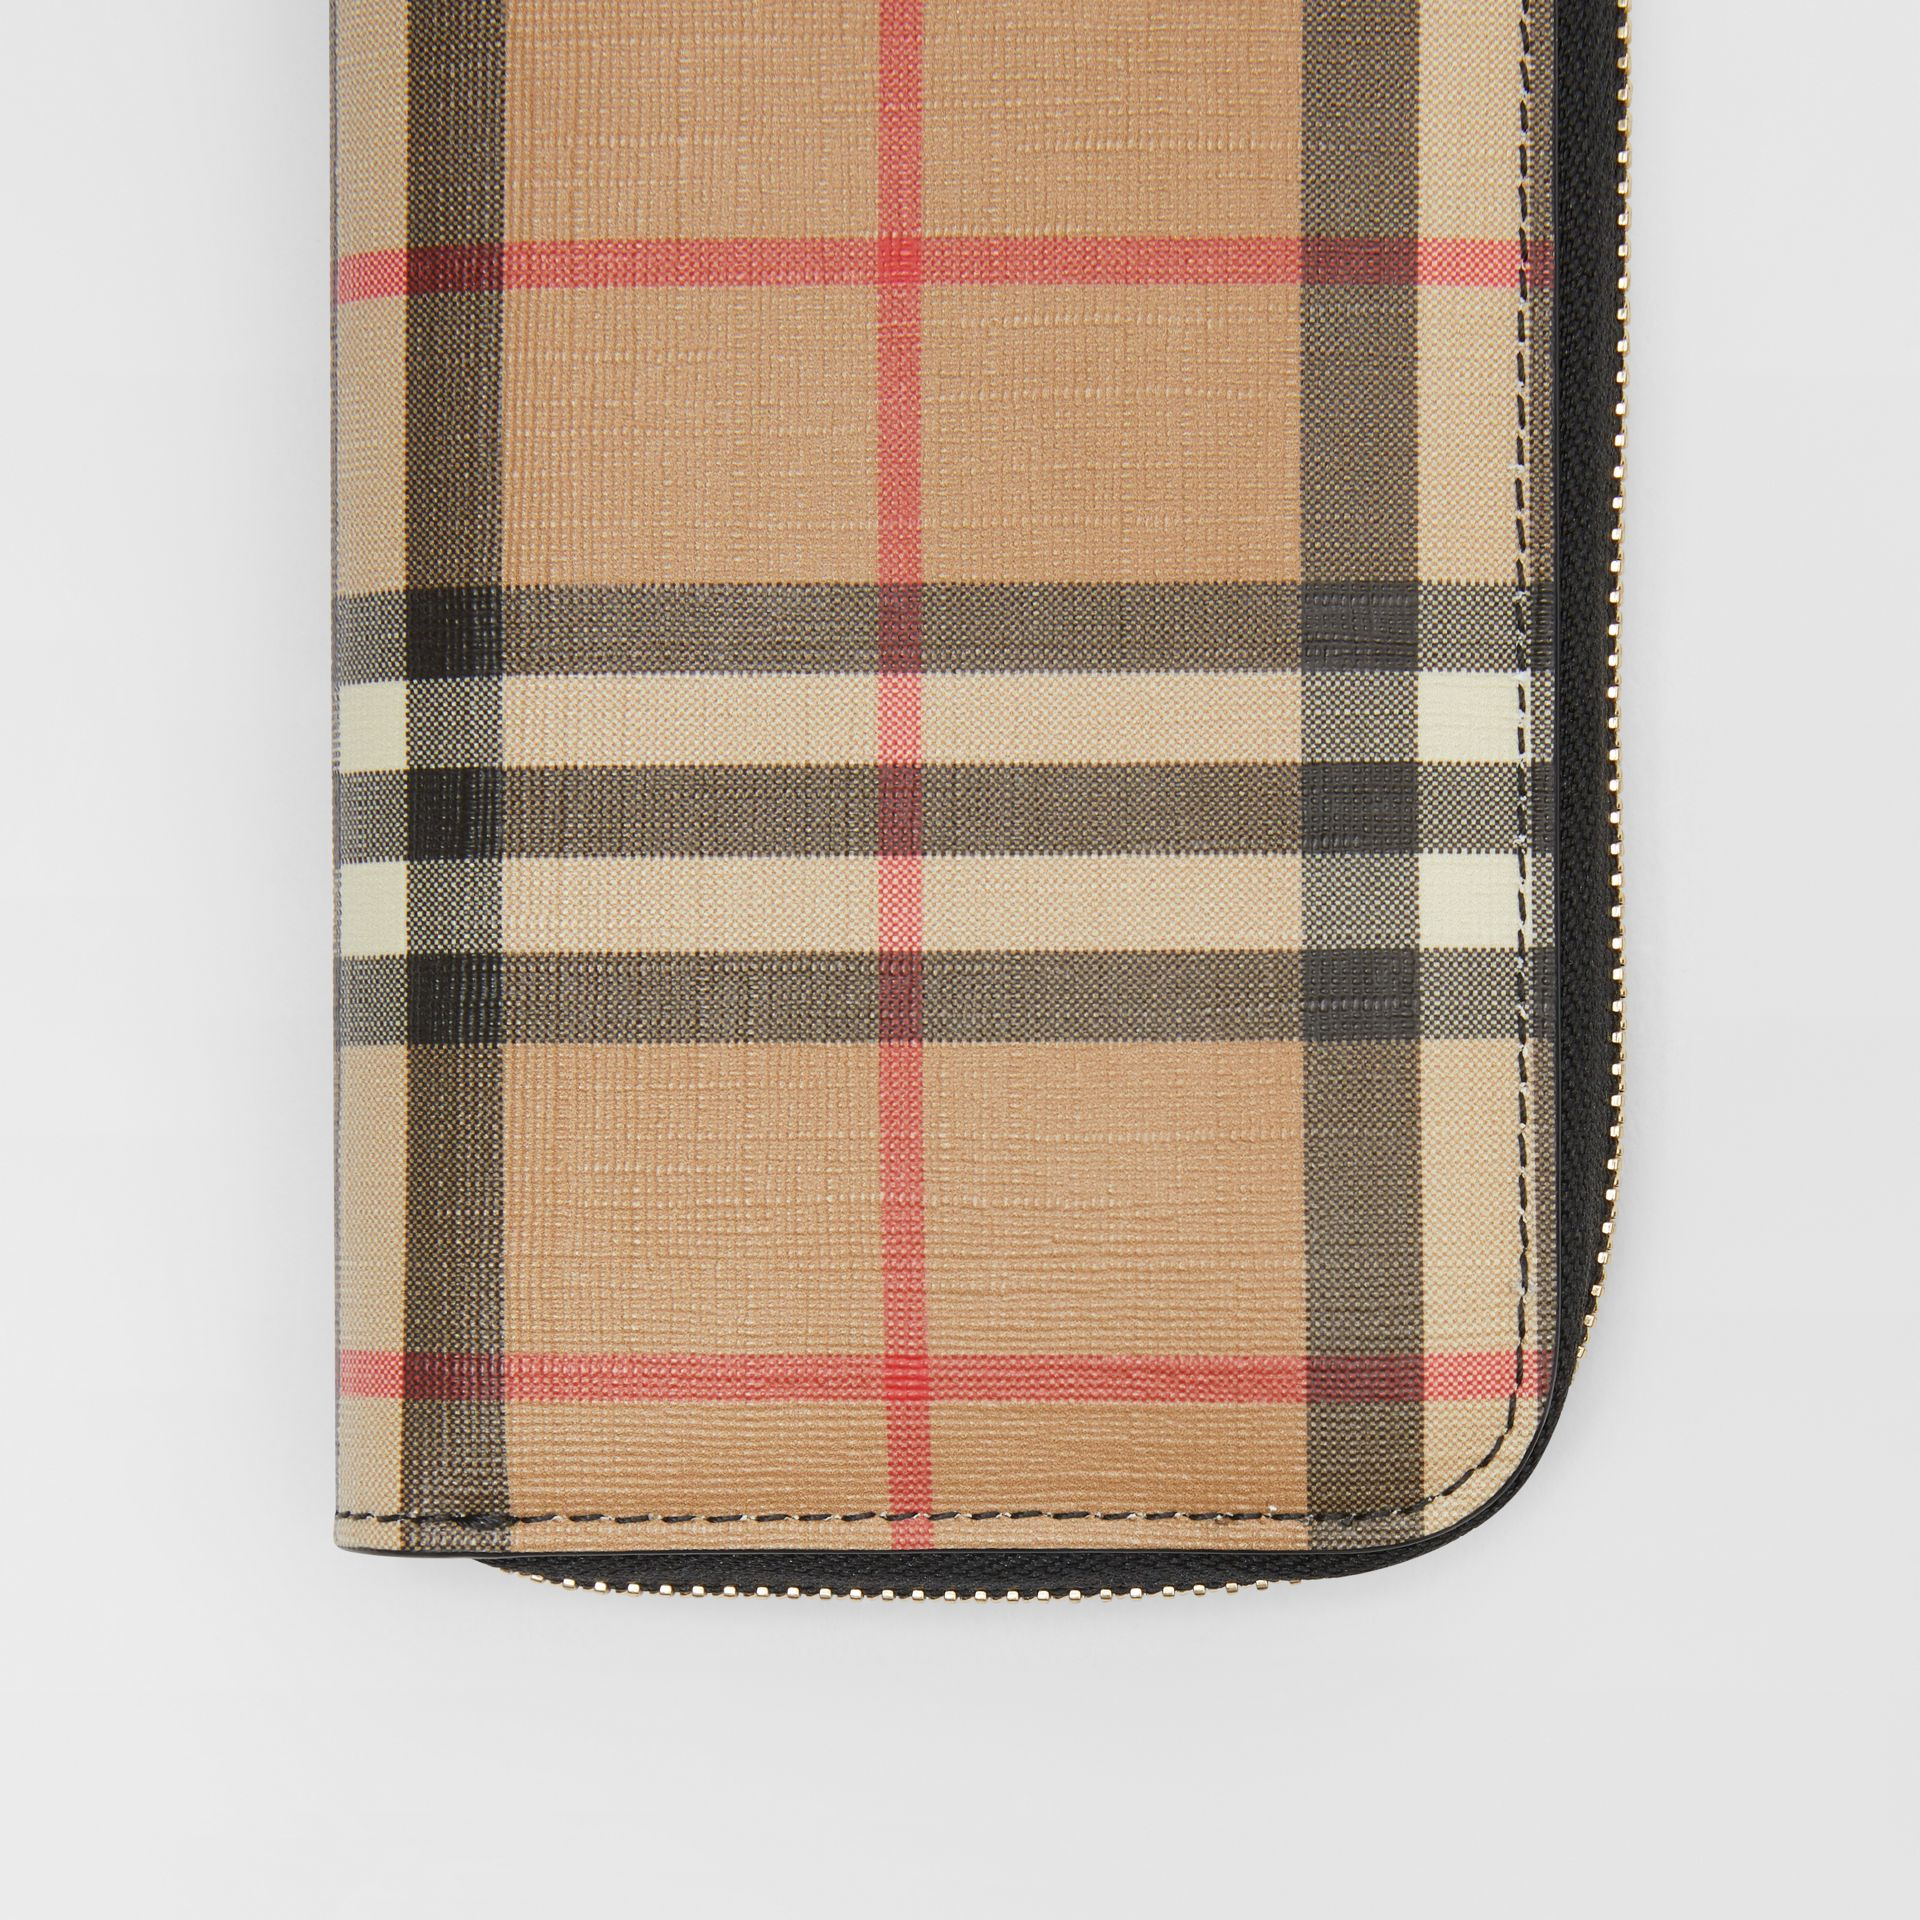 Vintage Check and Leather Ziparound Wallet in Black - Women | Burberry United Kingdom - gallery image 1